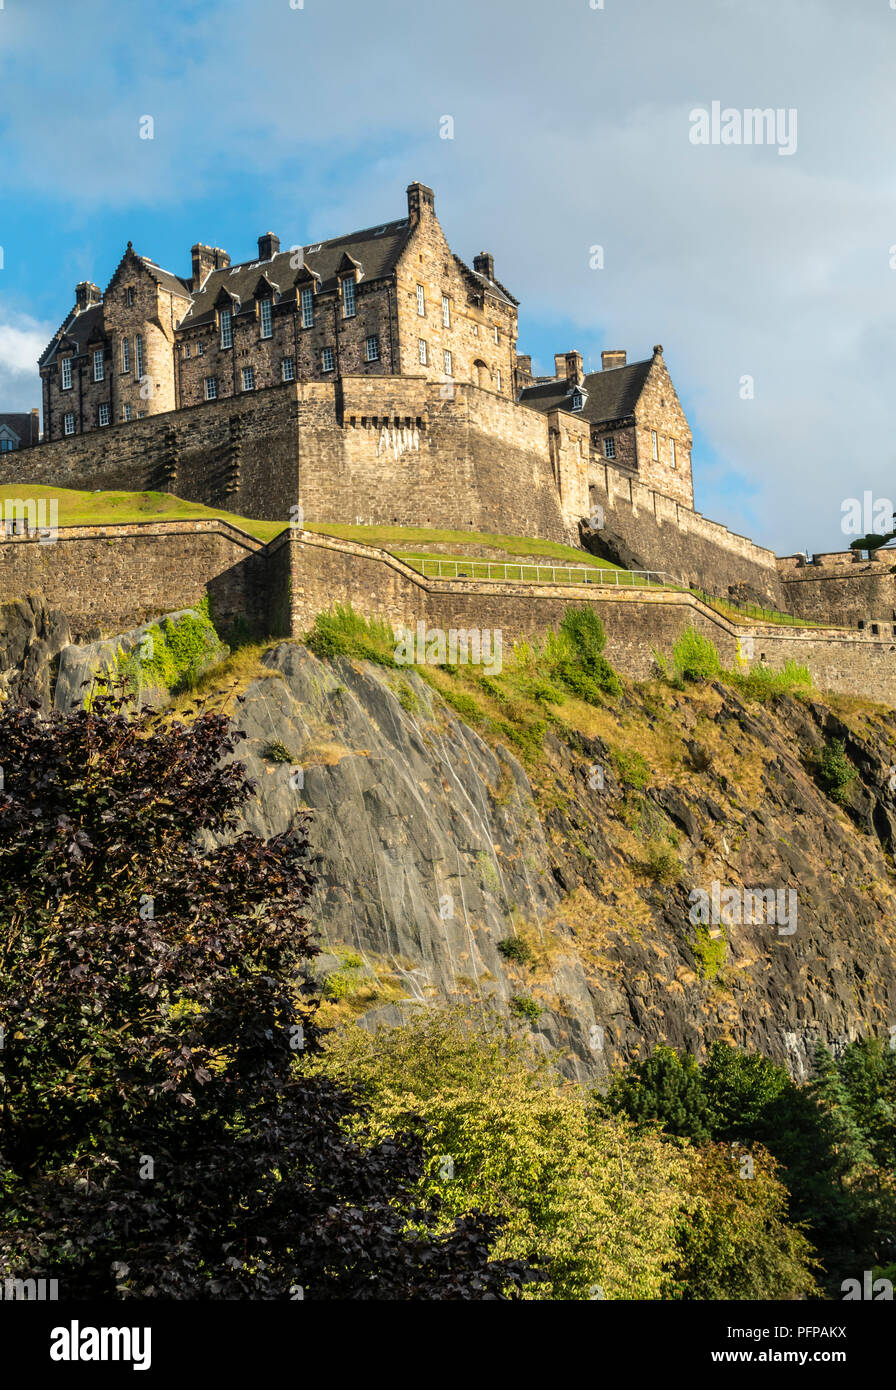 Edinburgh Castle, a historic fortress on top of a volcanic plug, where it is a landmark and tourist attraction in the middle of Edinburgh city centre. - Stock Image